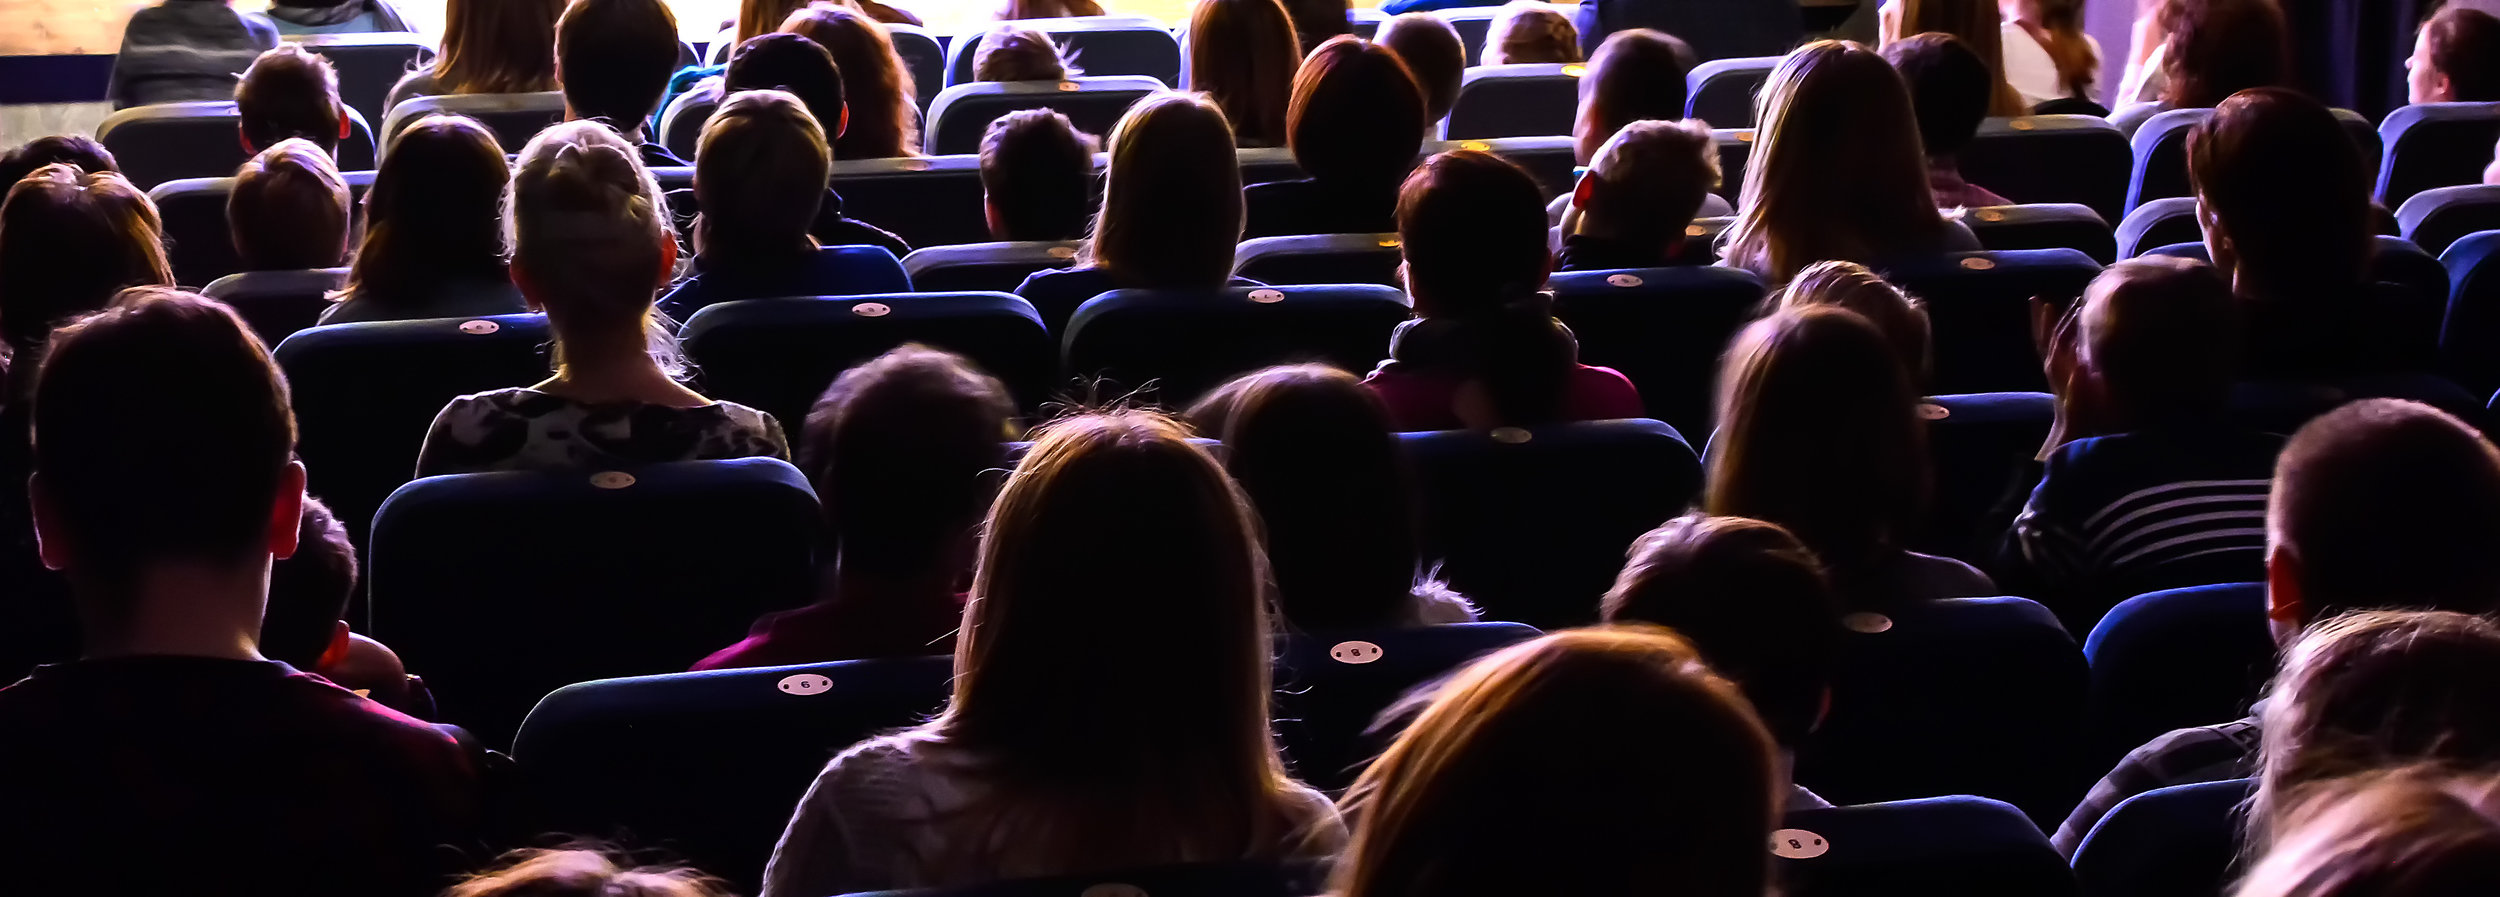 People-in-the-auditorium-watching-the-performance-886131824_4825x1732.jpeg